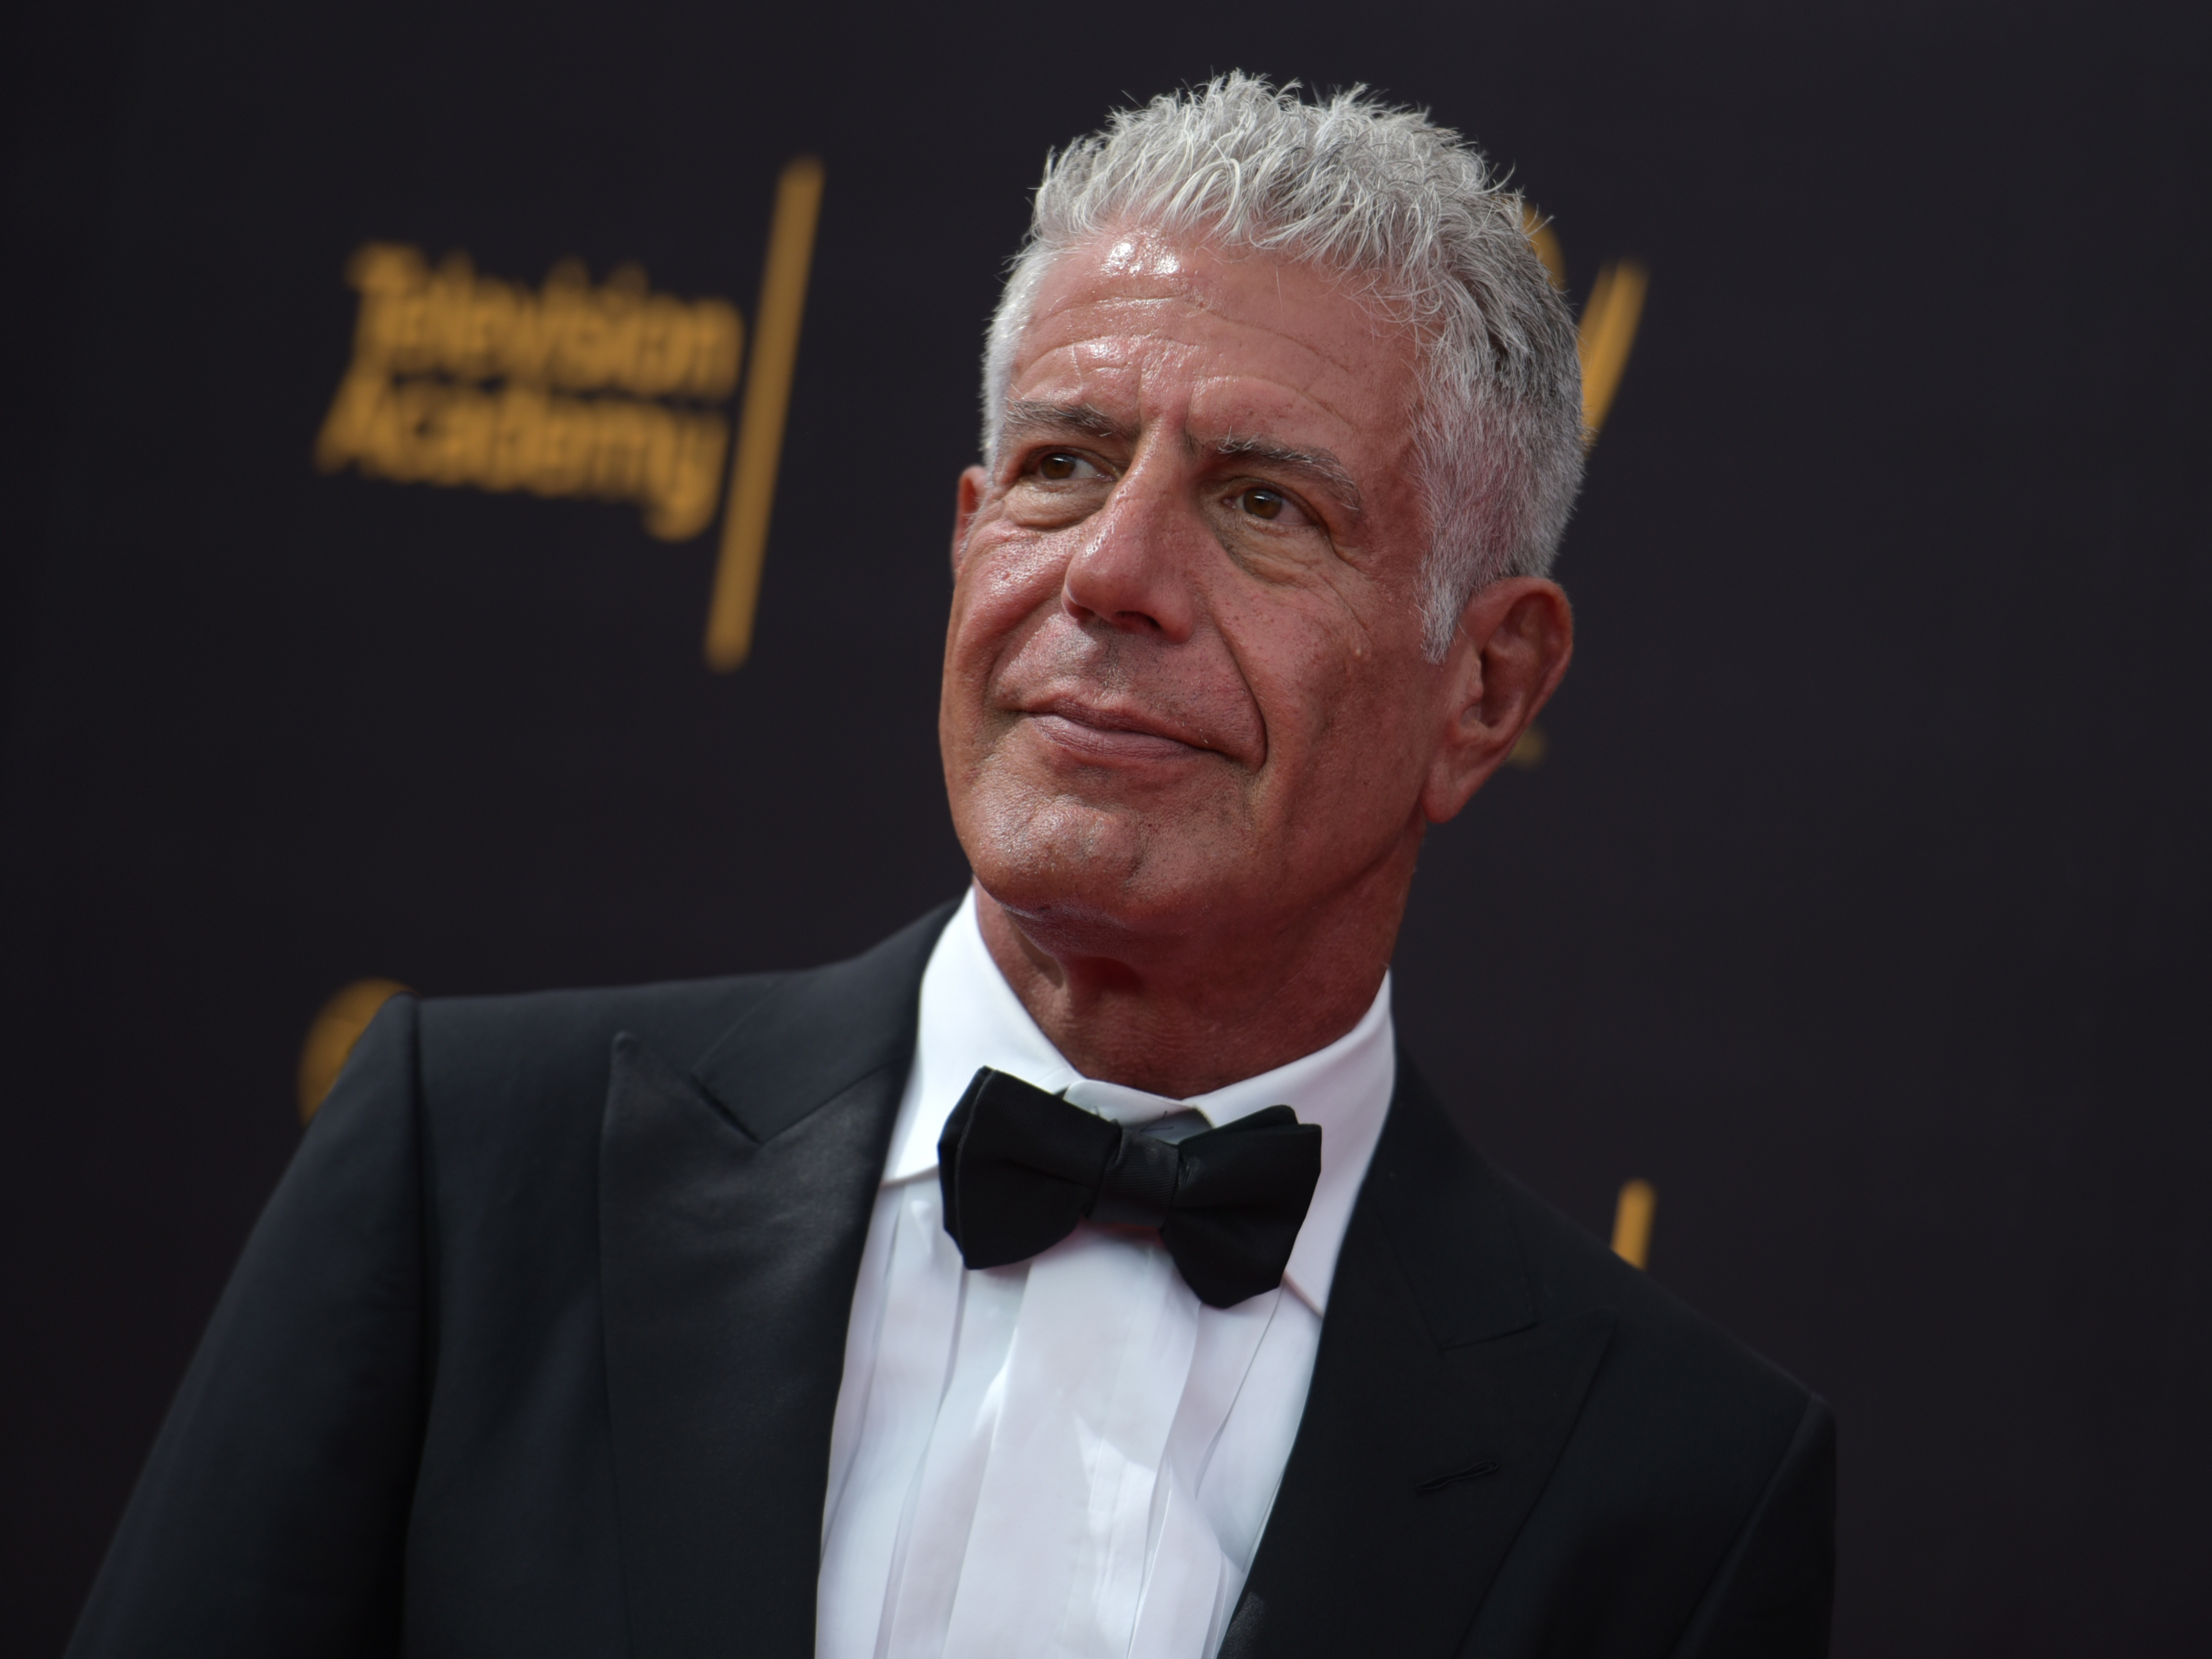 Anthony Bourdain arrives at the Microsoft Theater in Los Angeles on Sunday, Sept. 11, 2016.